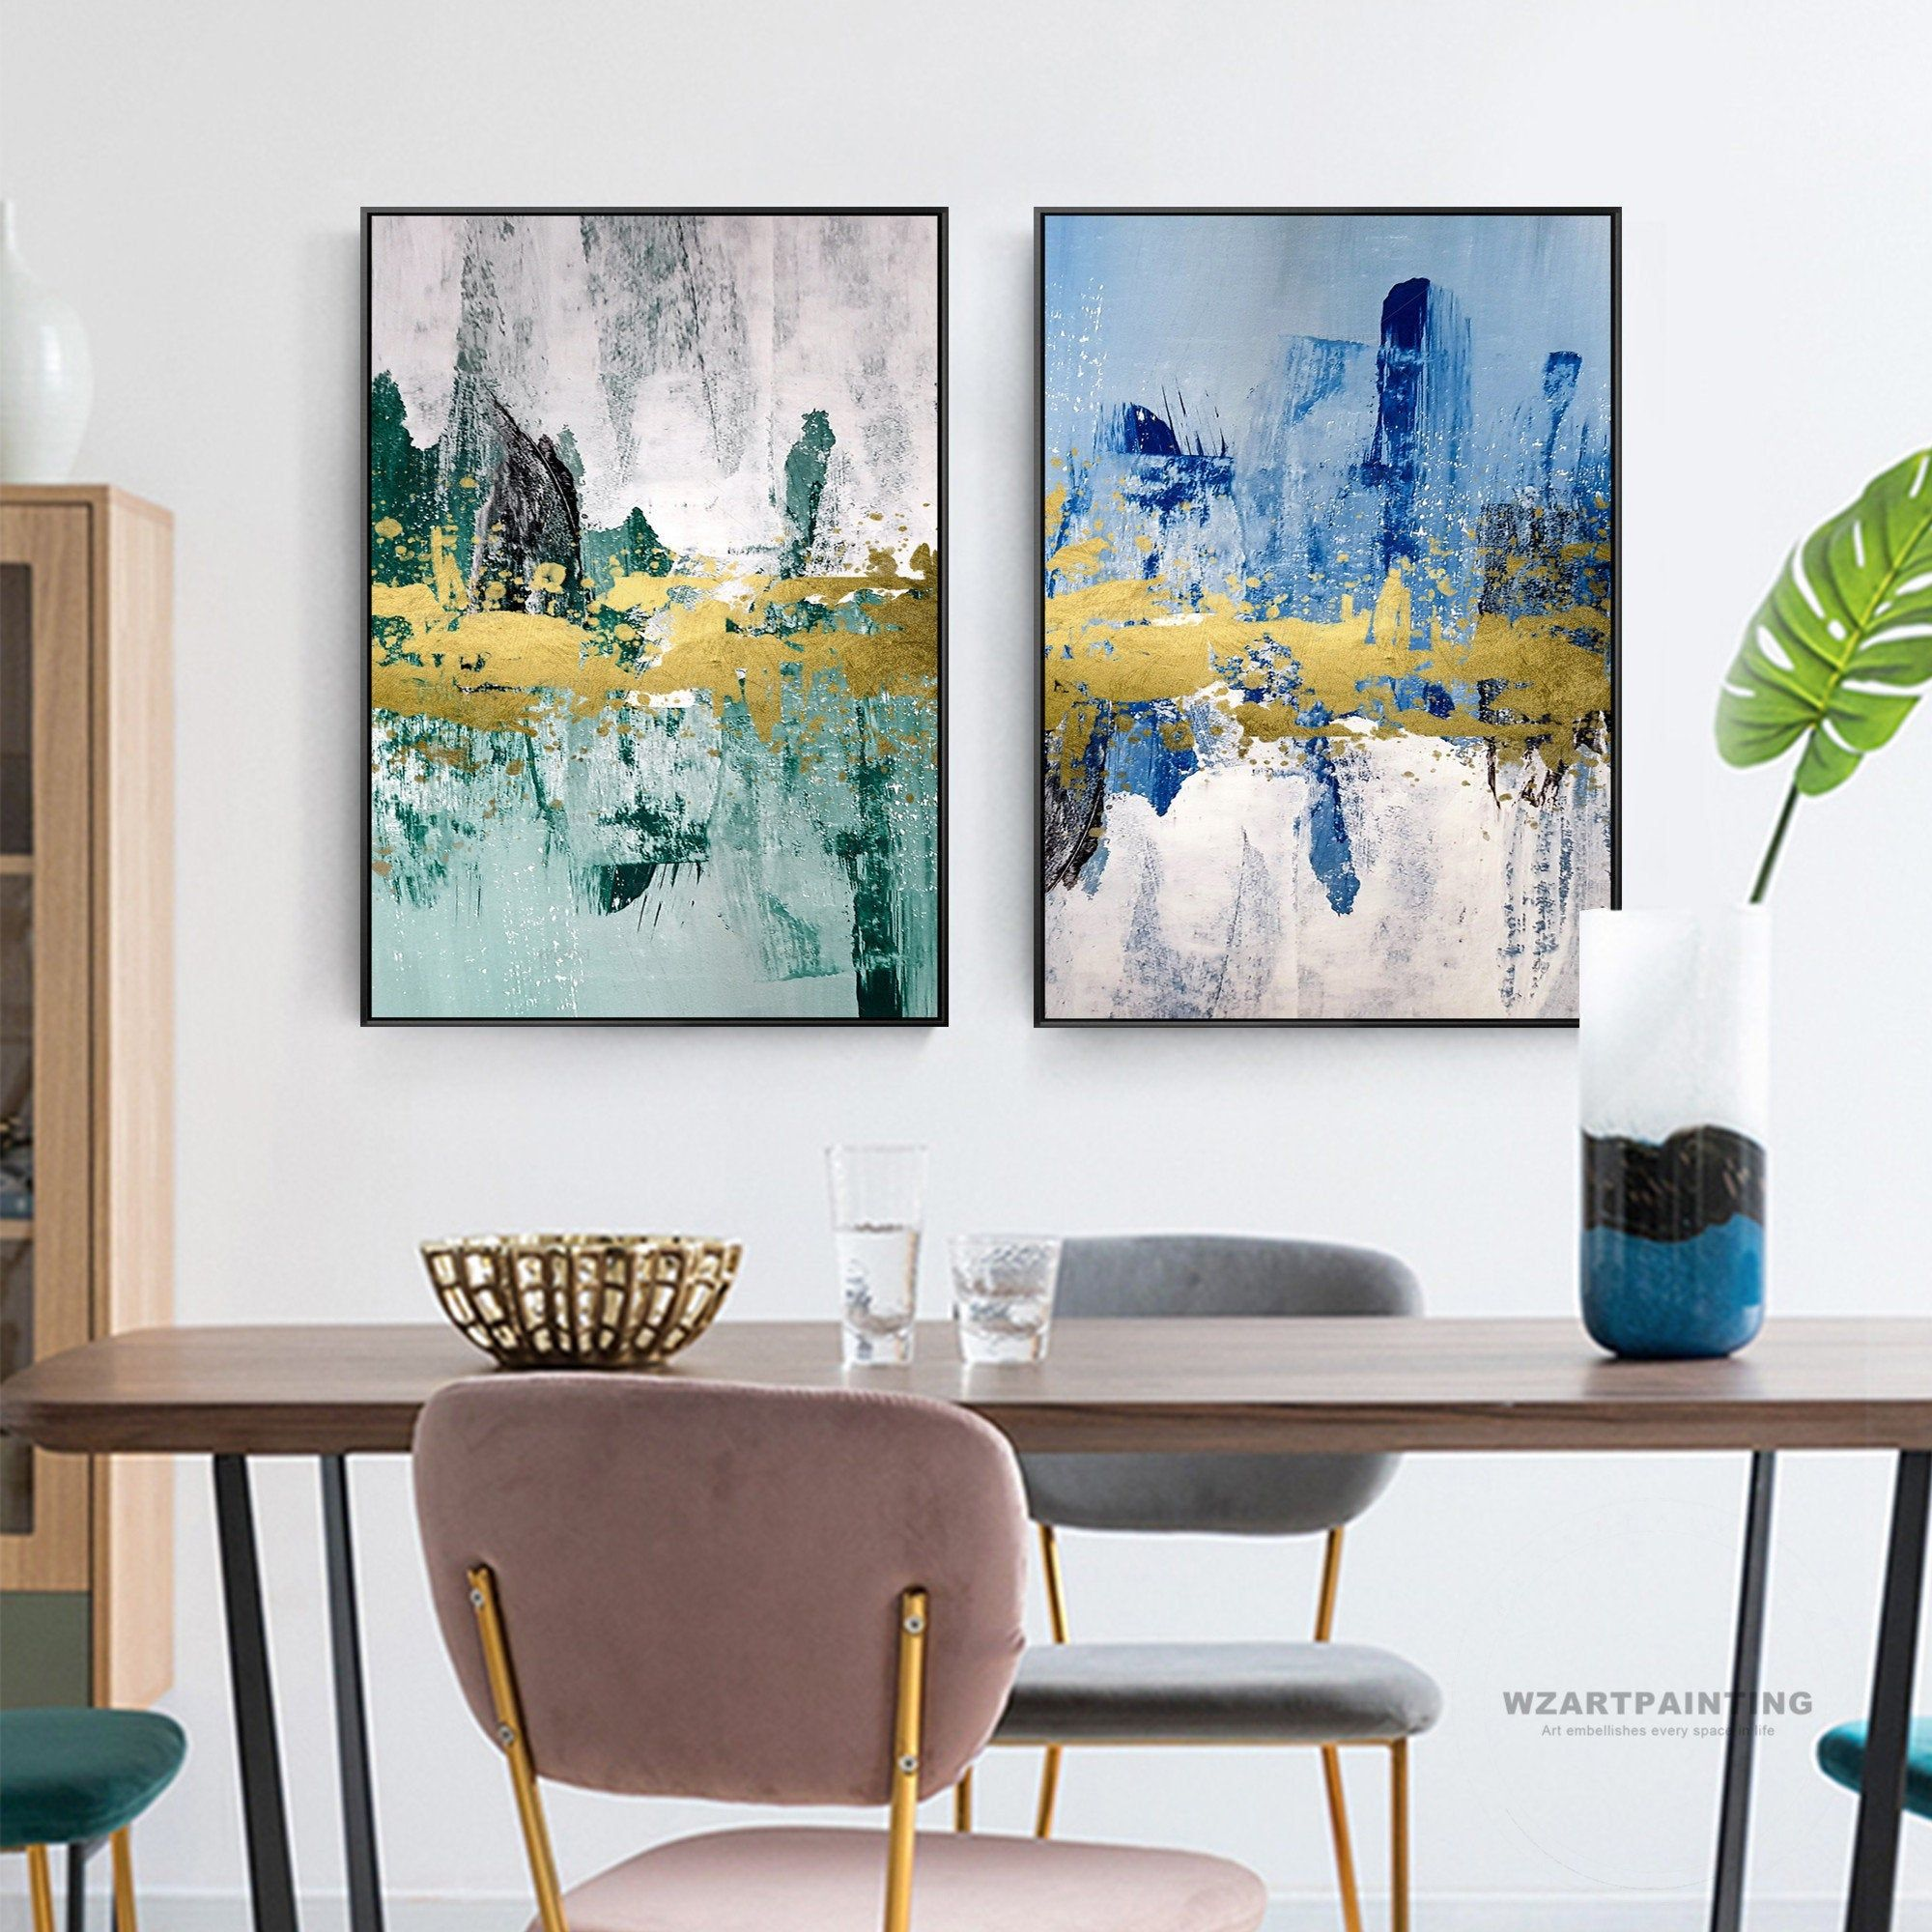 Framed Wall Art Set Of 2 Prints Abstract Gold Green Blue Print Painting Gold Art Pictures On Canvas Large Wal Framed Wall Art Sets Frames On Wall Wall Art Sets